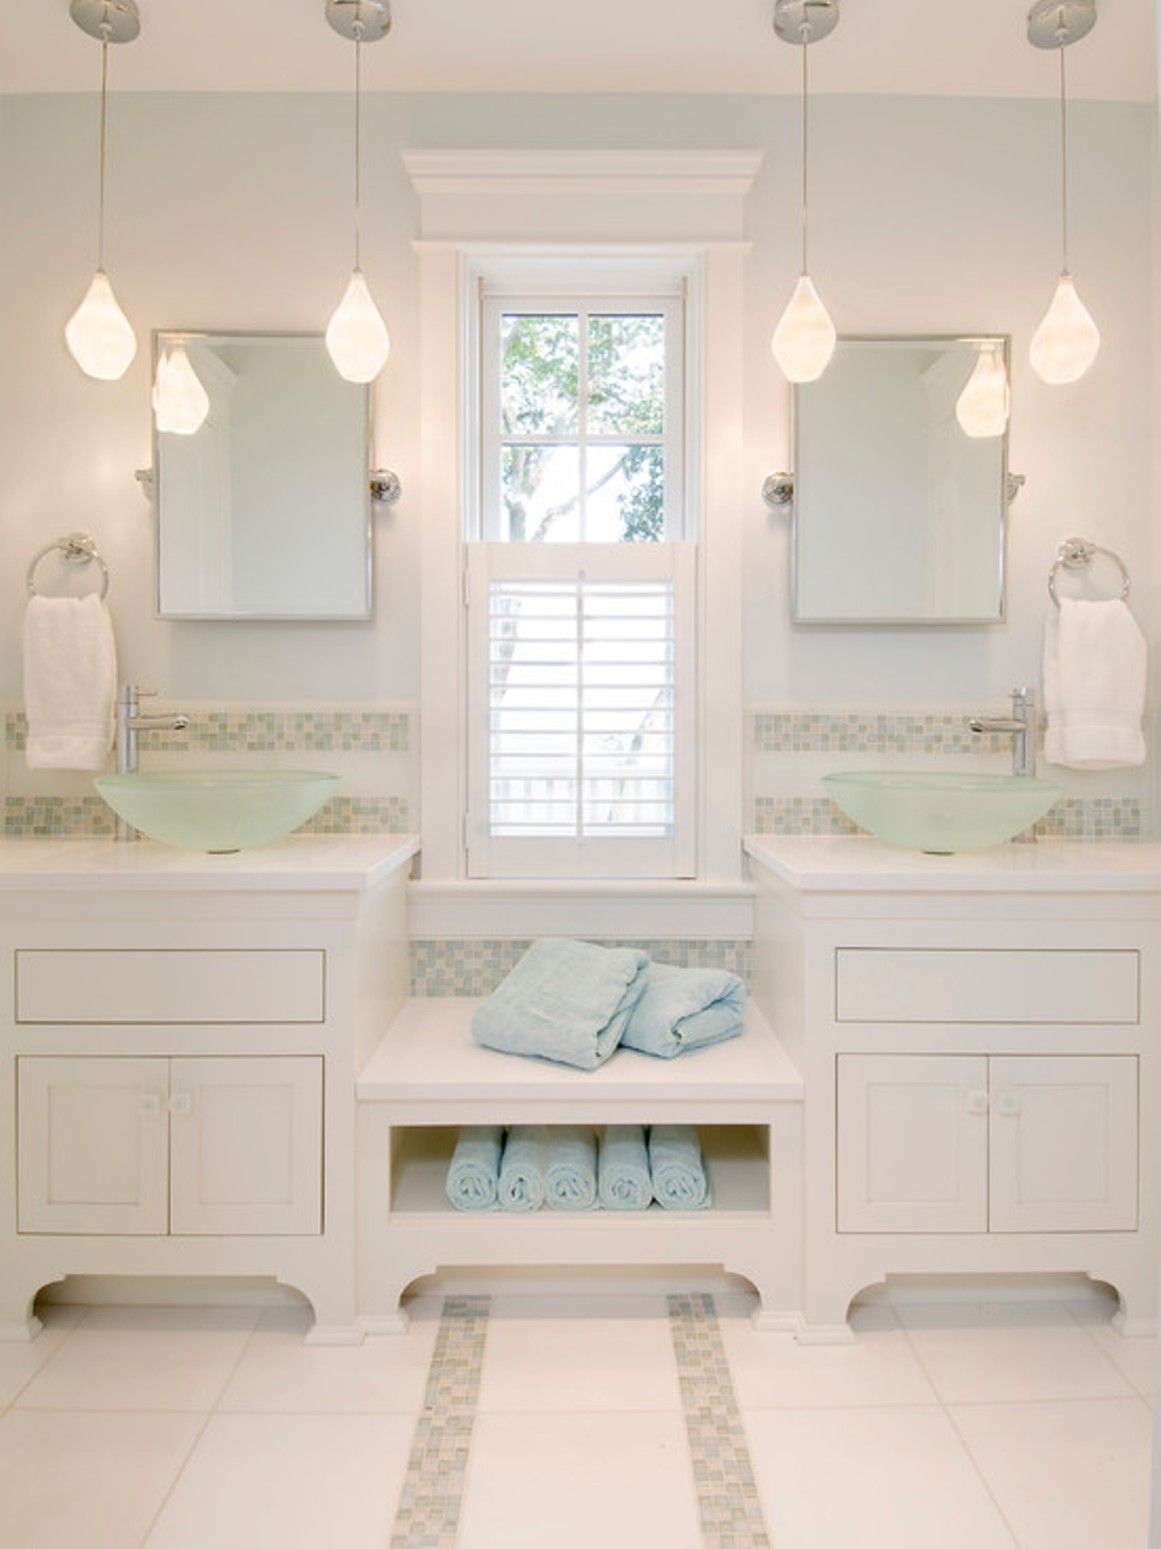 Modern bathroom vanity lighting - Bathroom Bathroom Vanity Lighting Fixtures Awesome Beach House Bathroom With White Bathroom Vanity Lighting